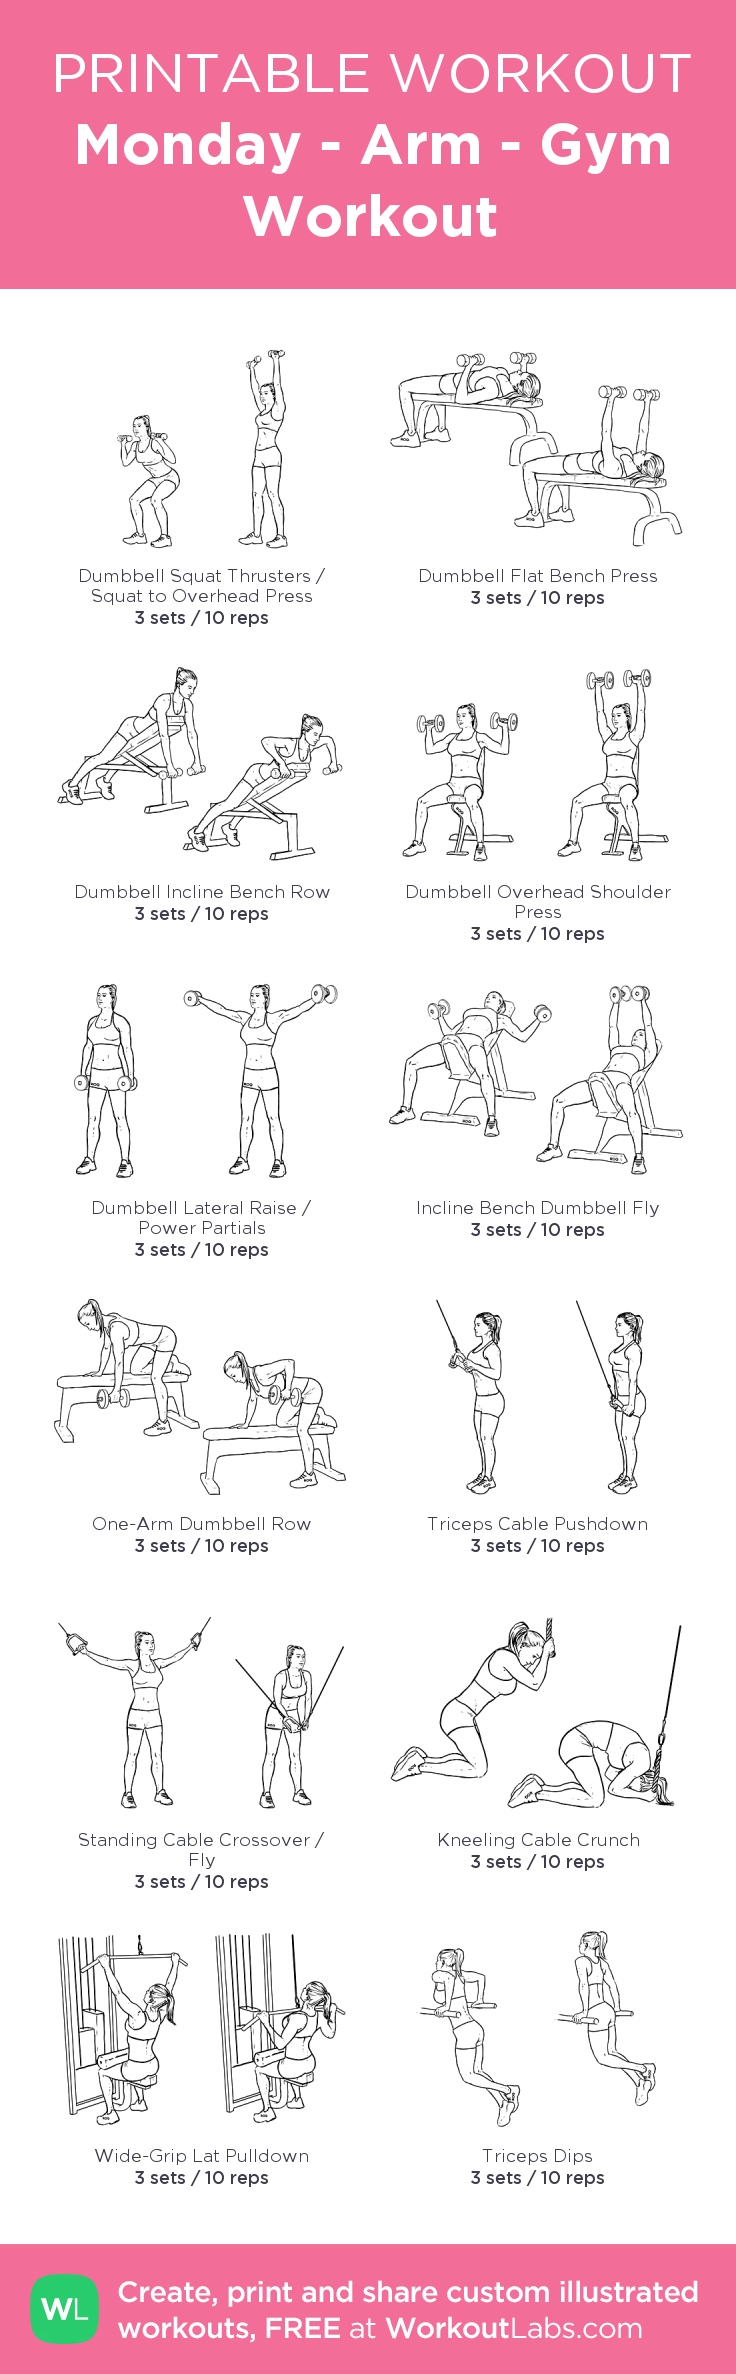 monday arm gym workout my visual workout created at click through to. Black Bedroom Furniture Sets. Home Design Ideas